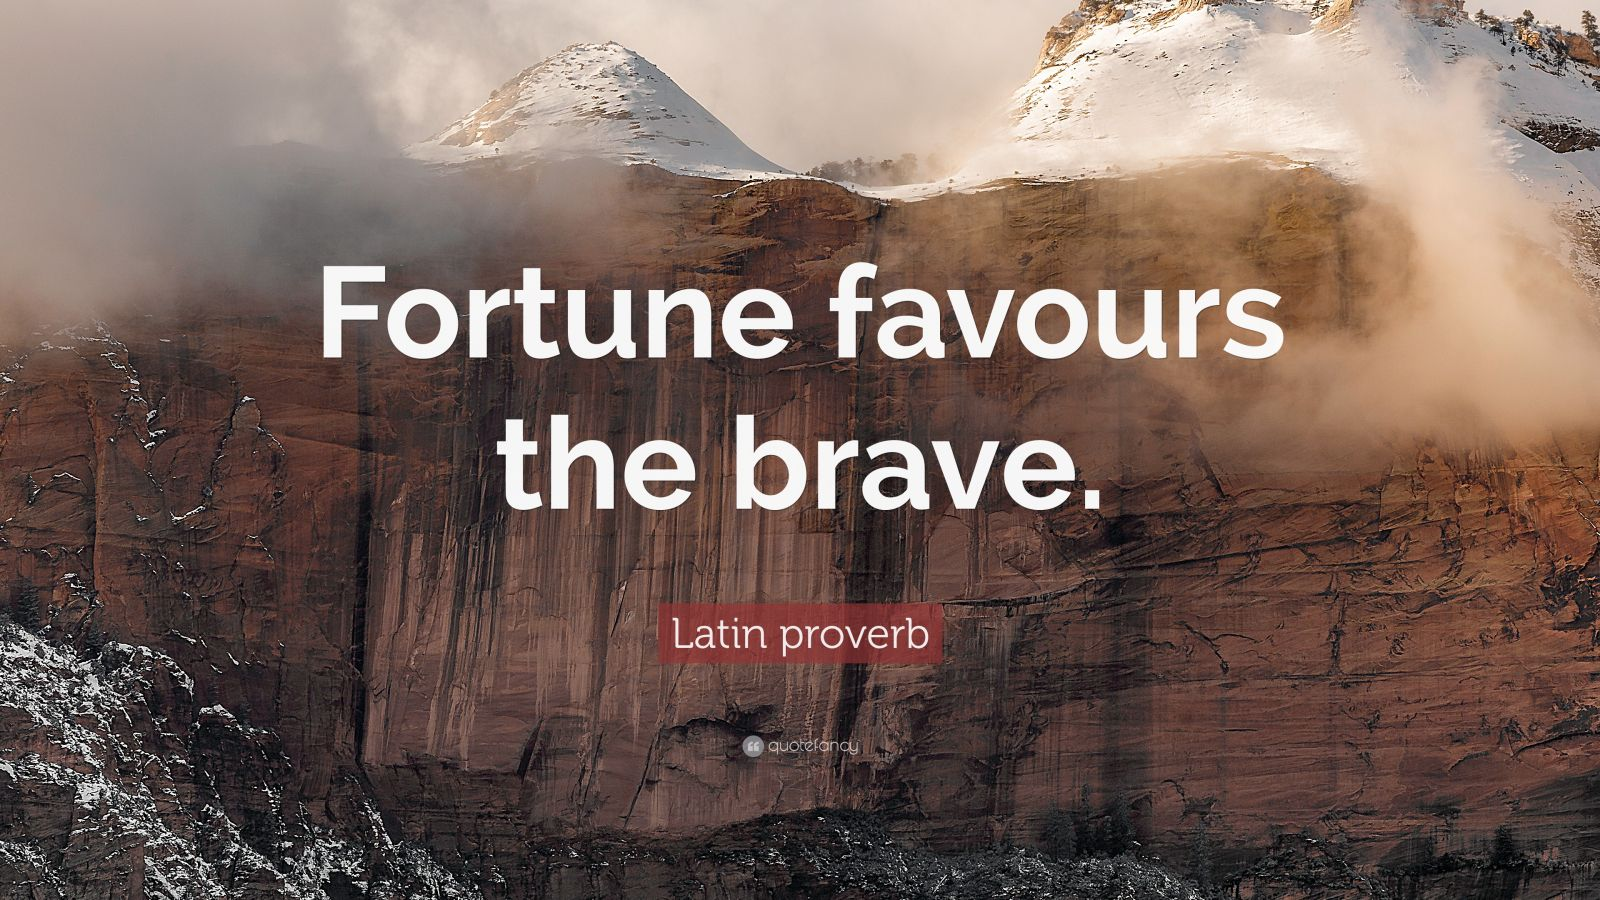 Casey Neistat Quotes Wallpaper Latin Proverb Quote Fortune Favours The Brave 10